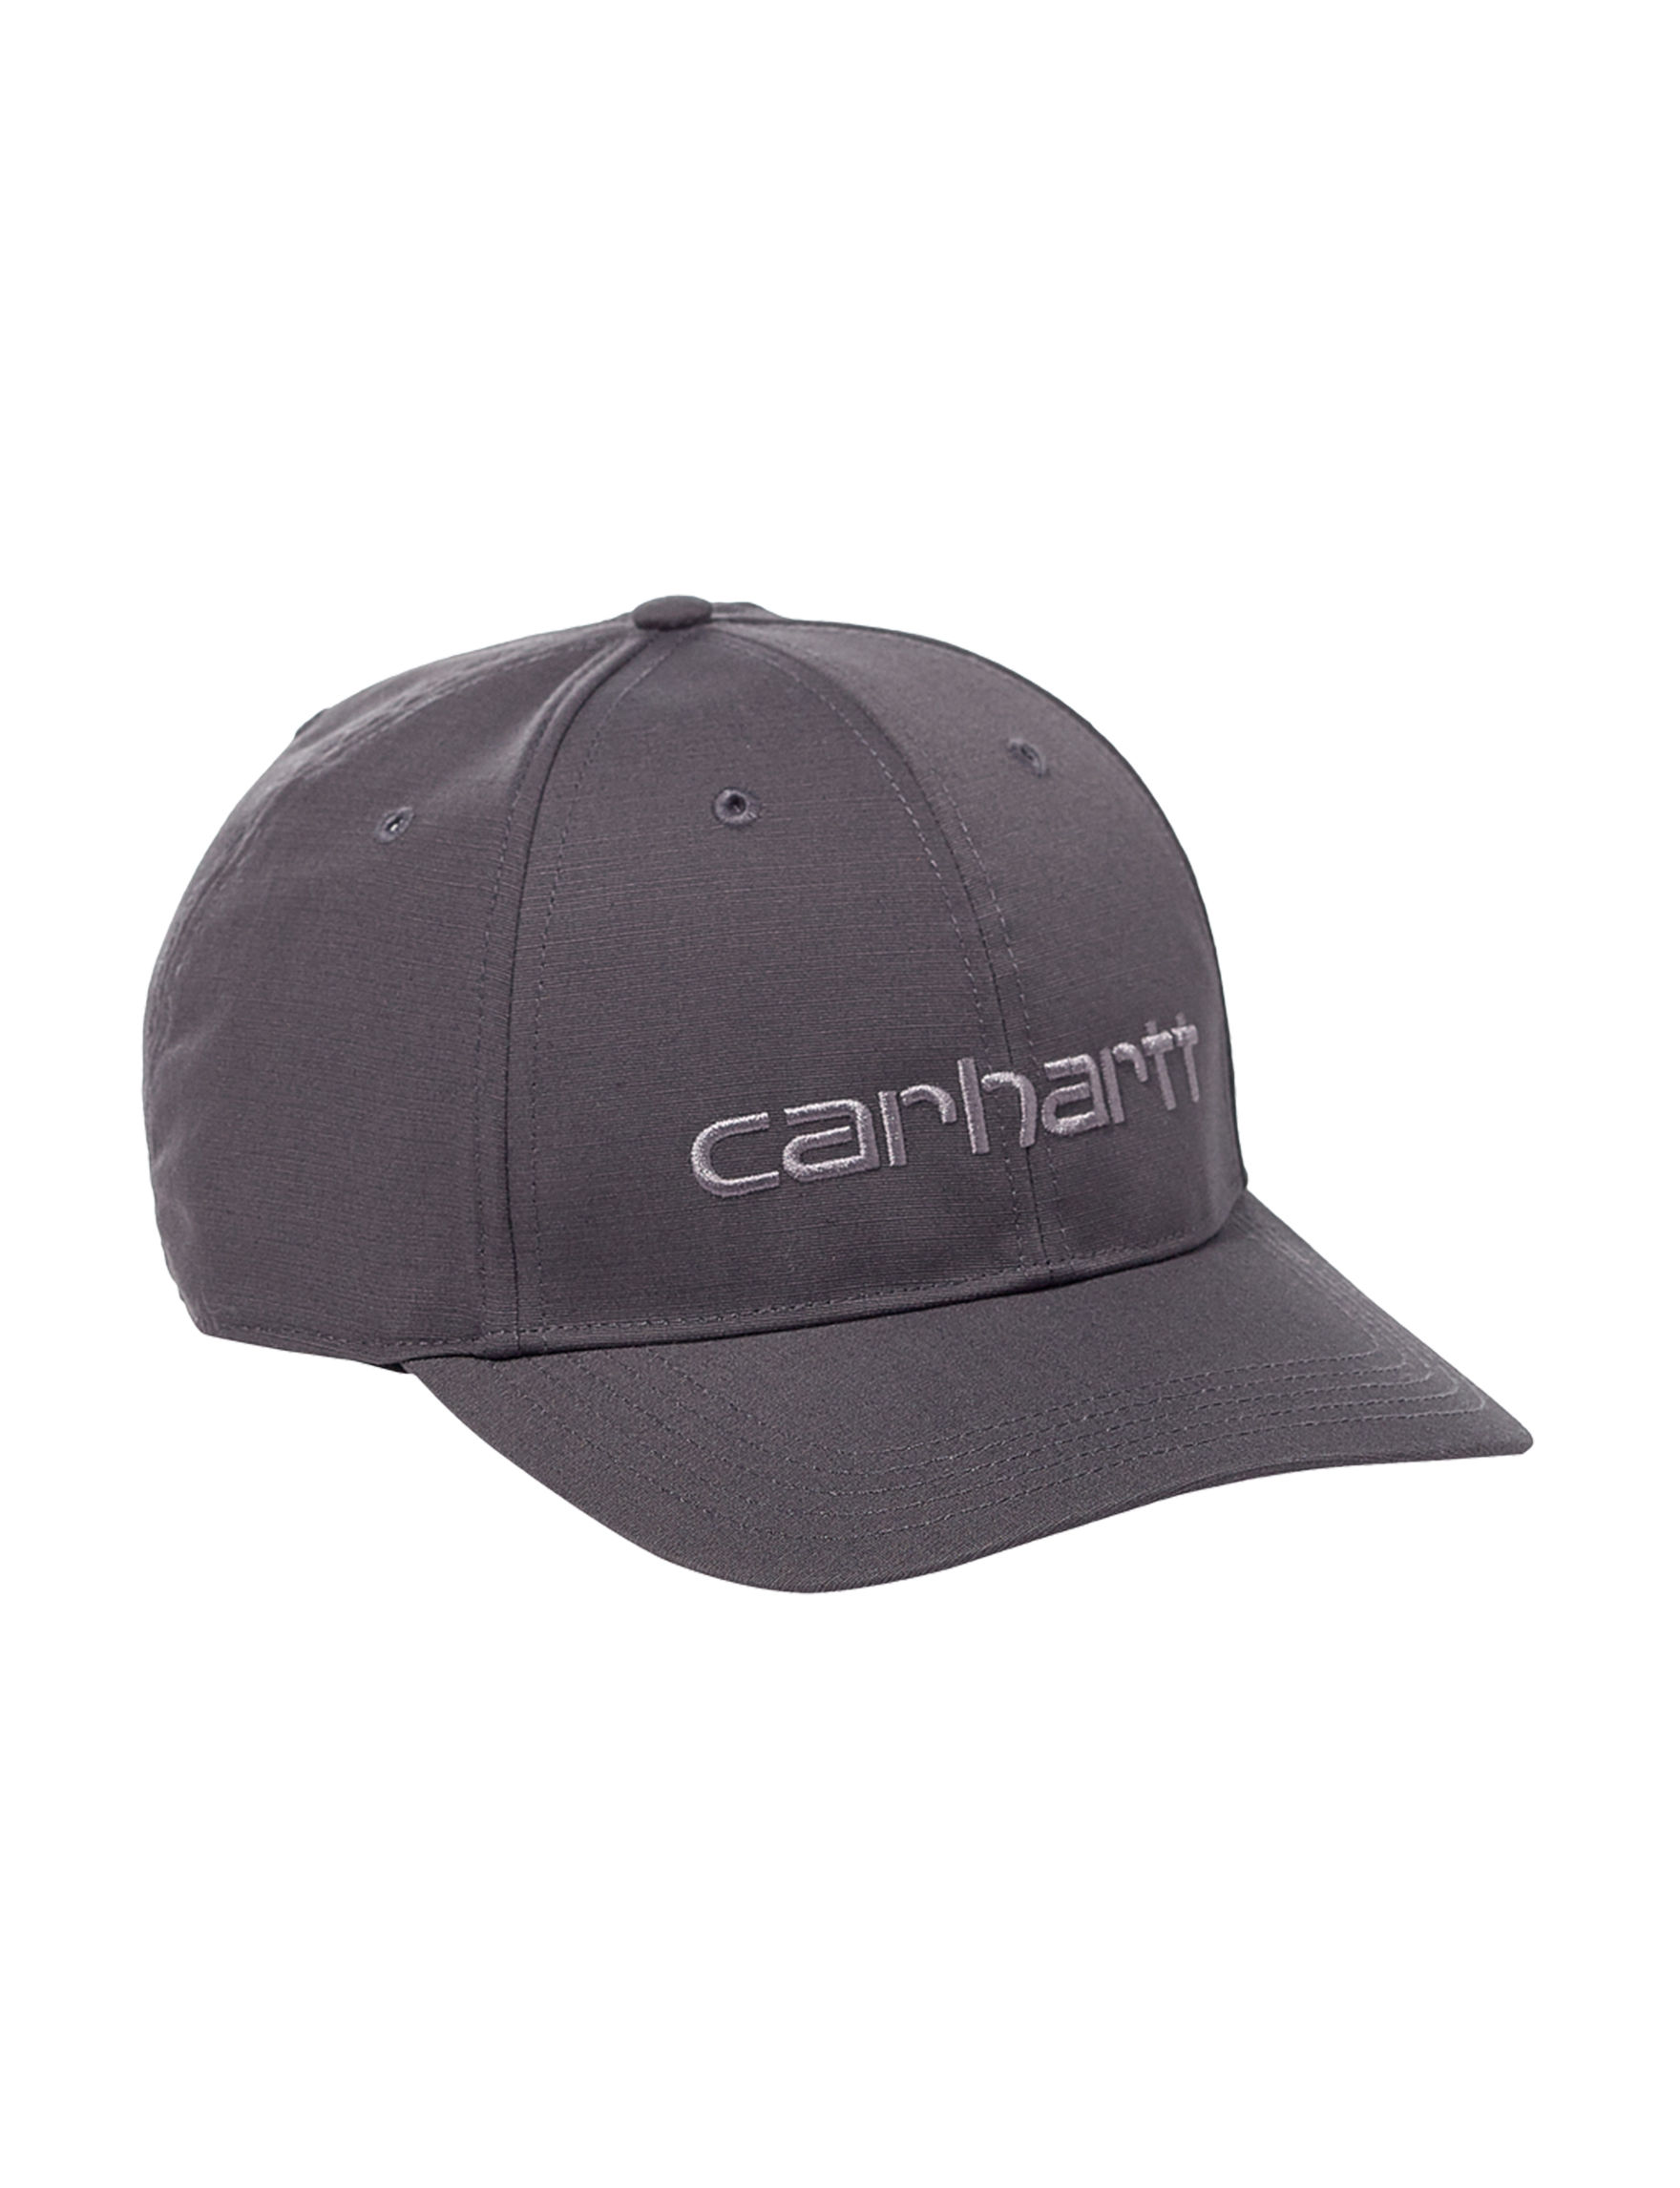 Carhartt Dark Grey Hats & Headwear